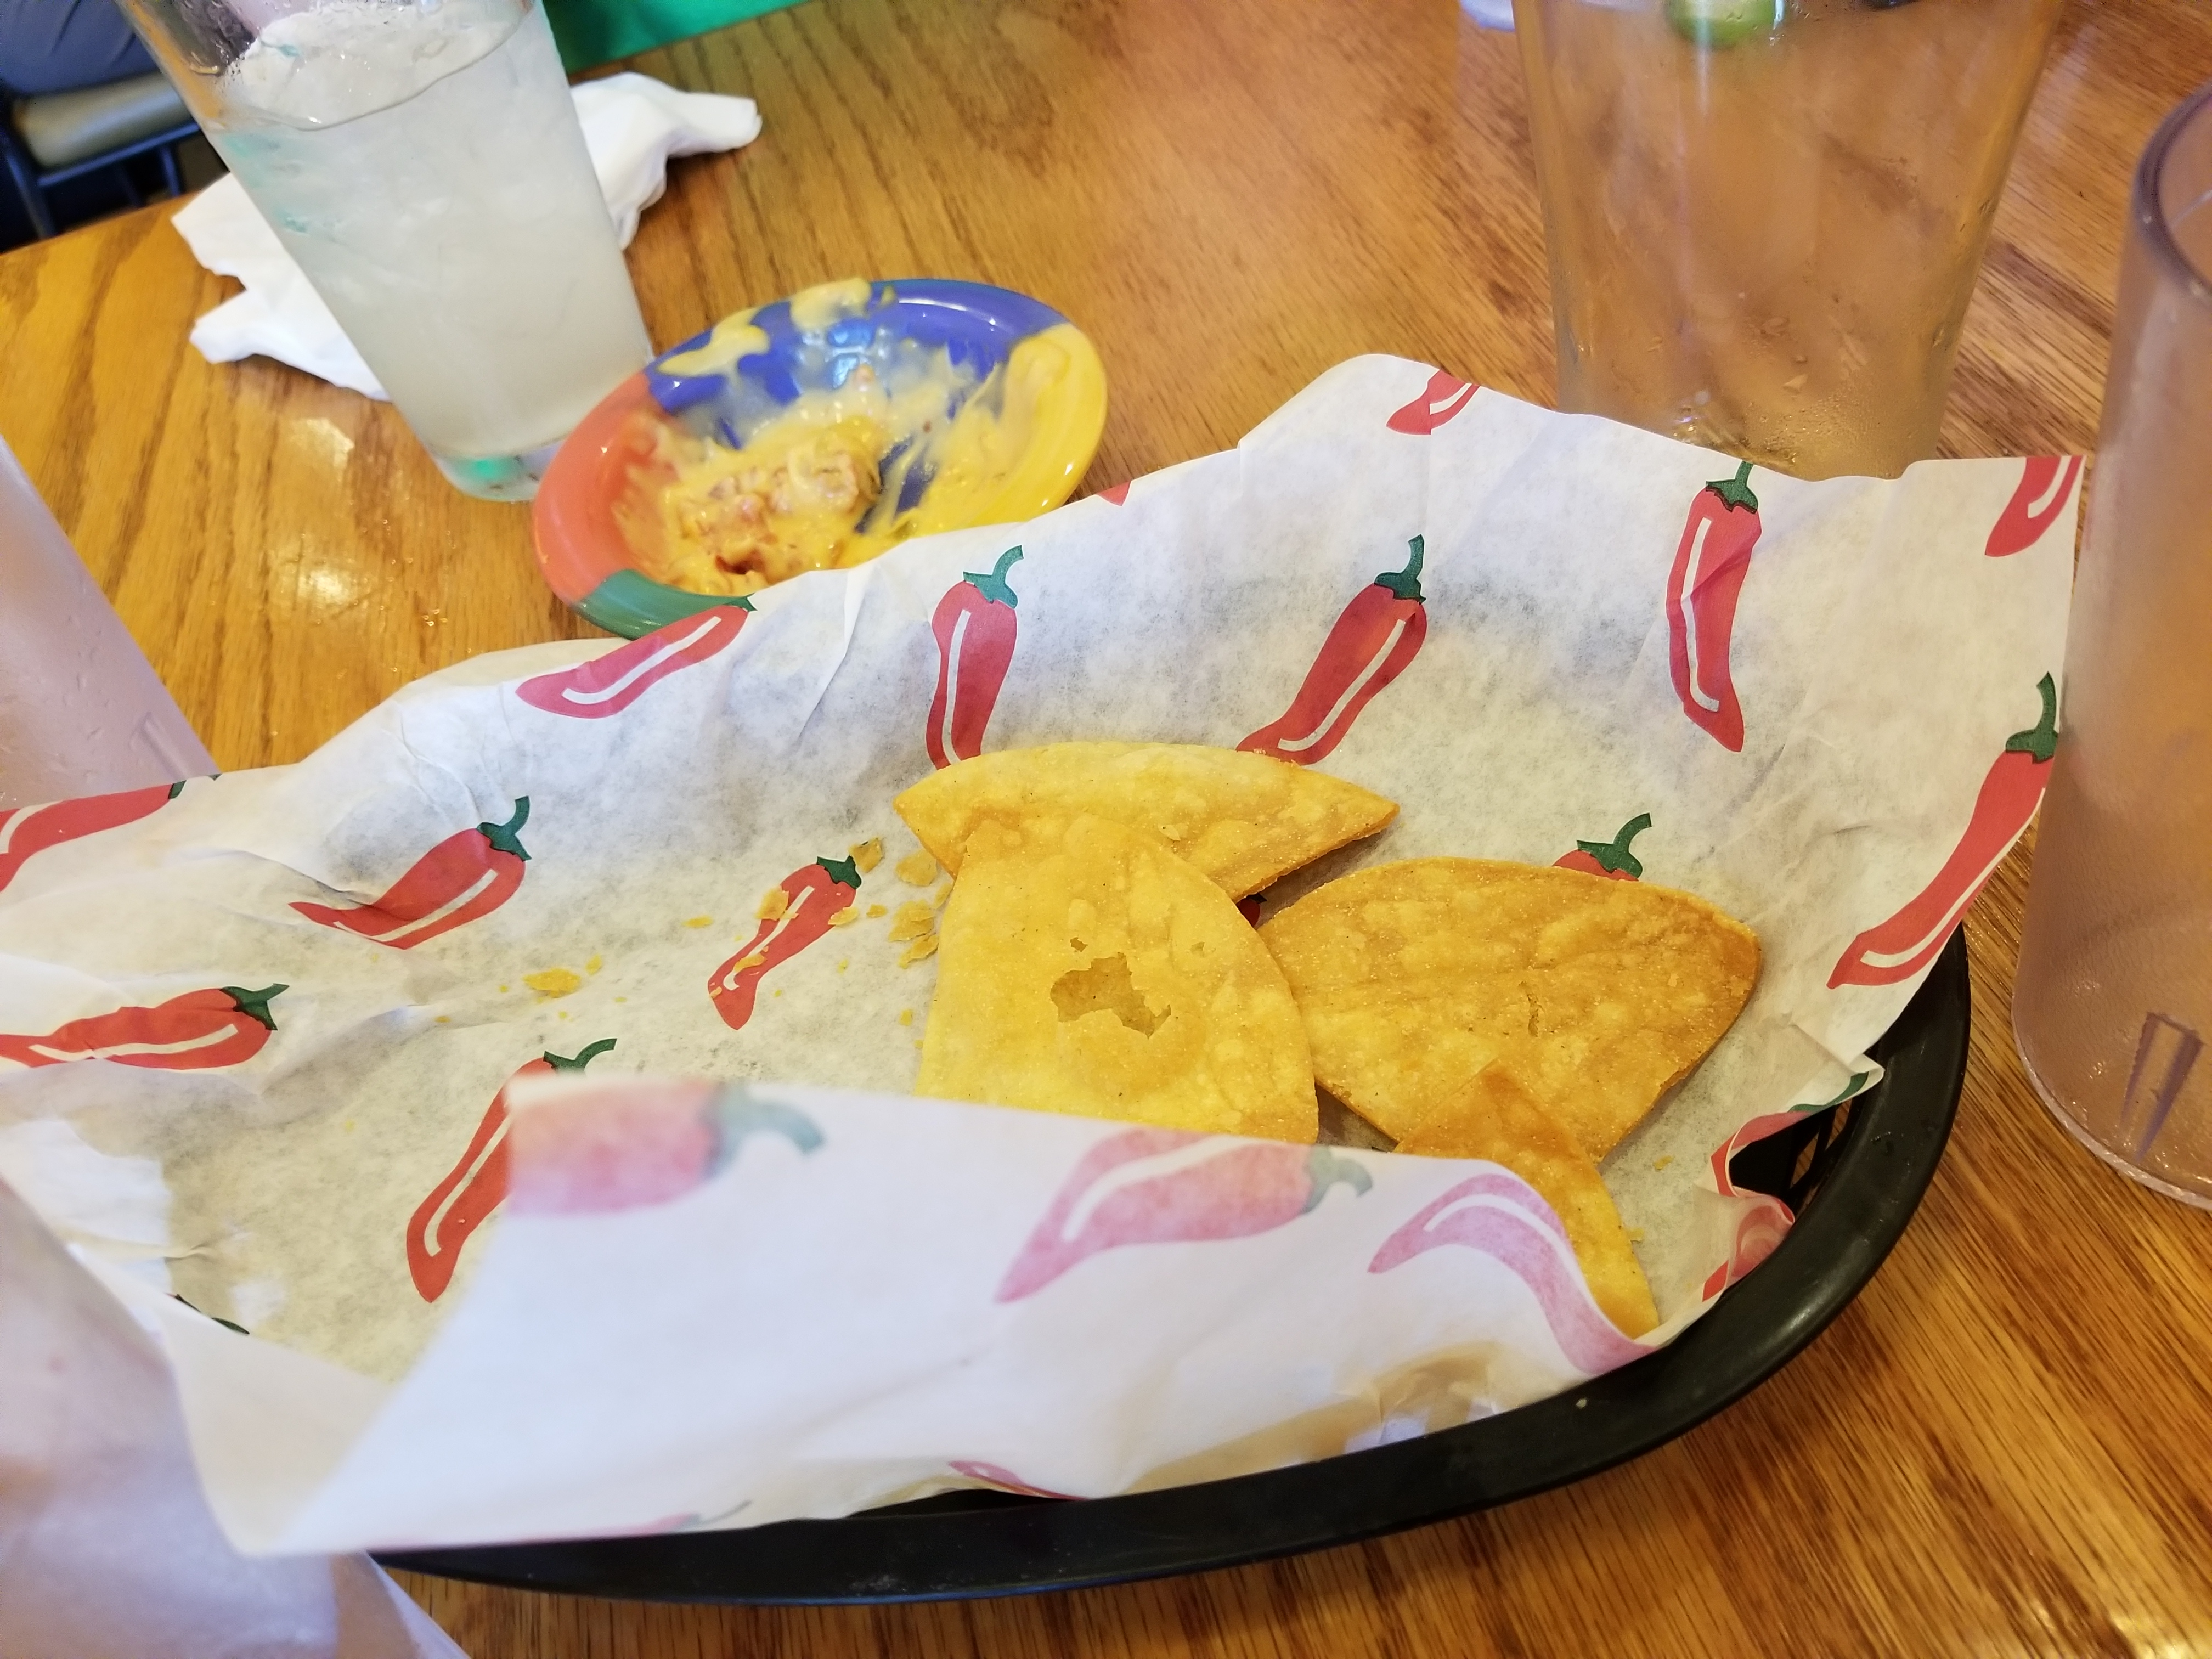 The demolished house-made tortilla chips with queso